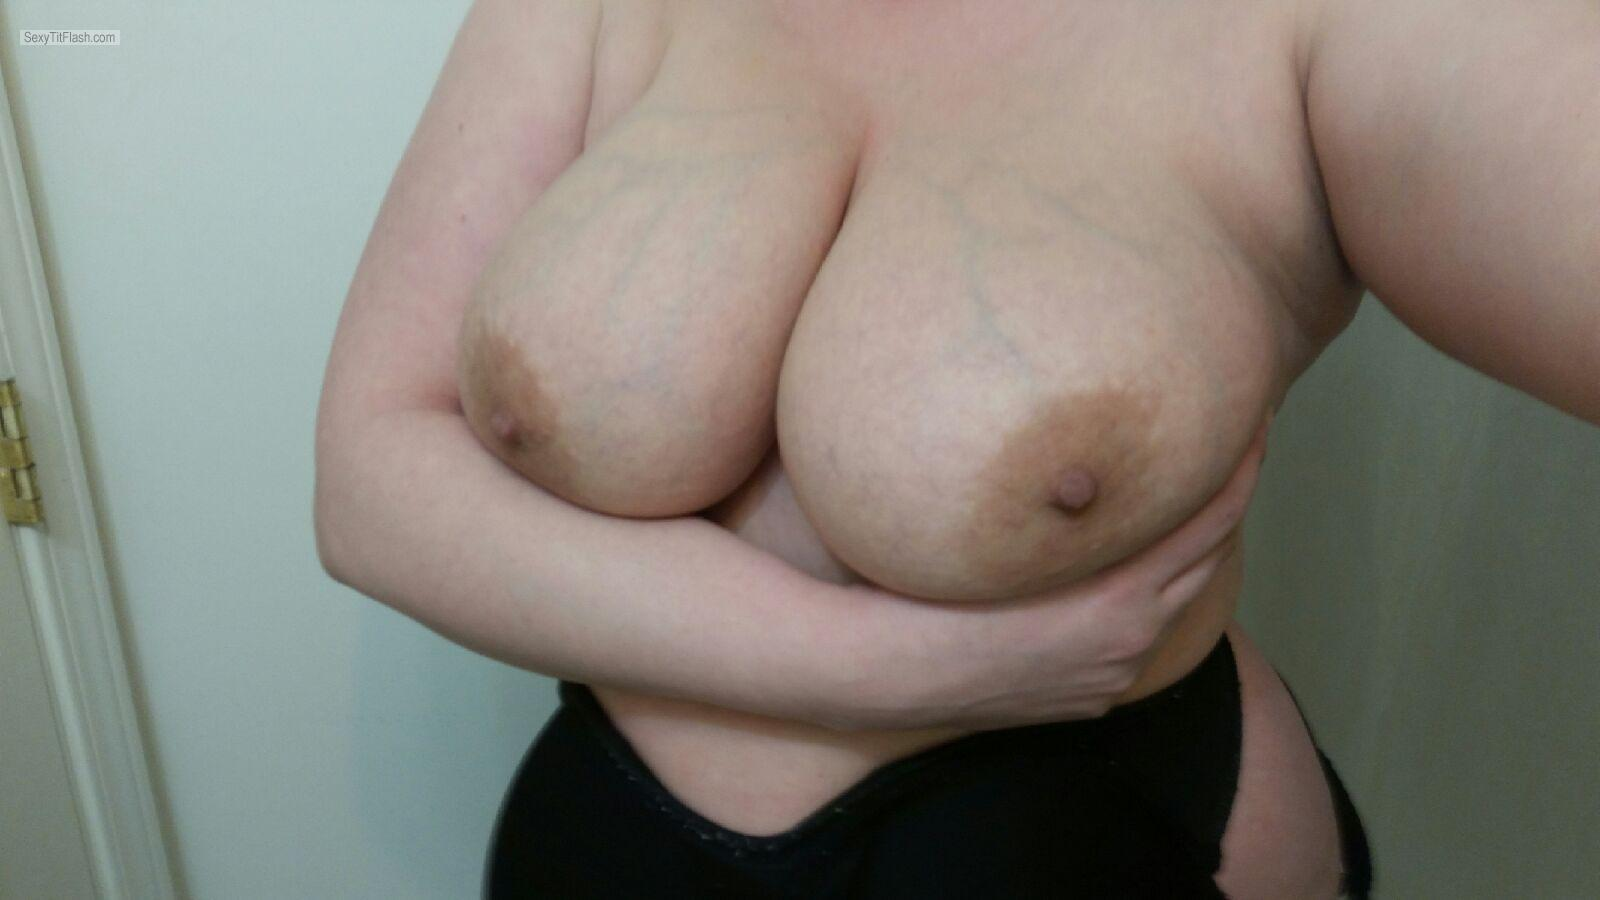 Very big Tits Of A Friend Topless B